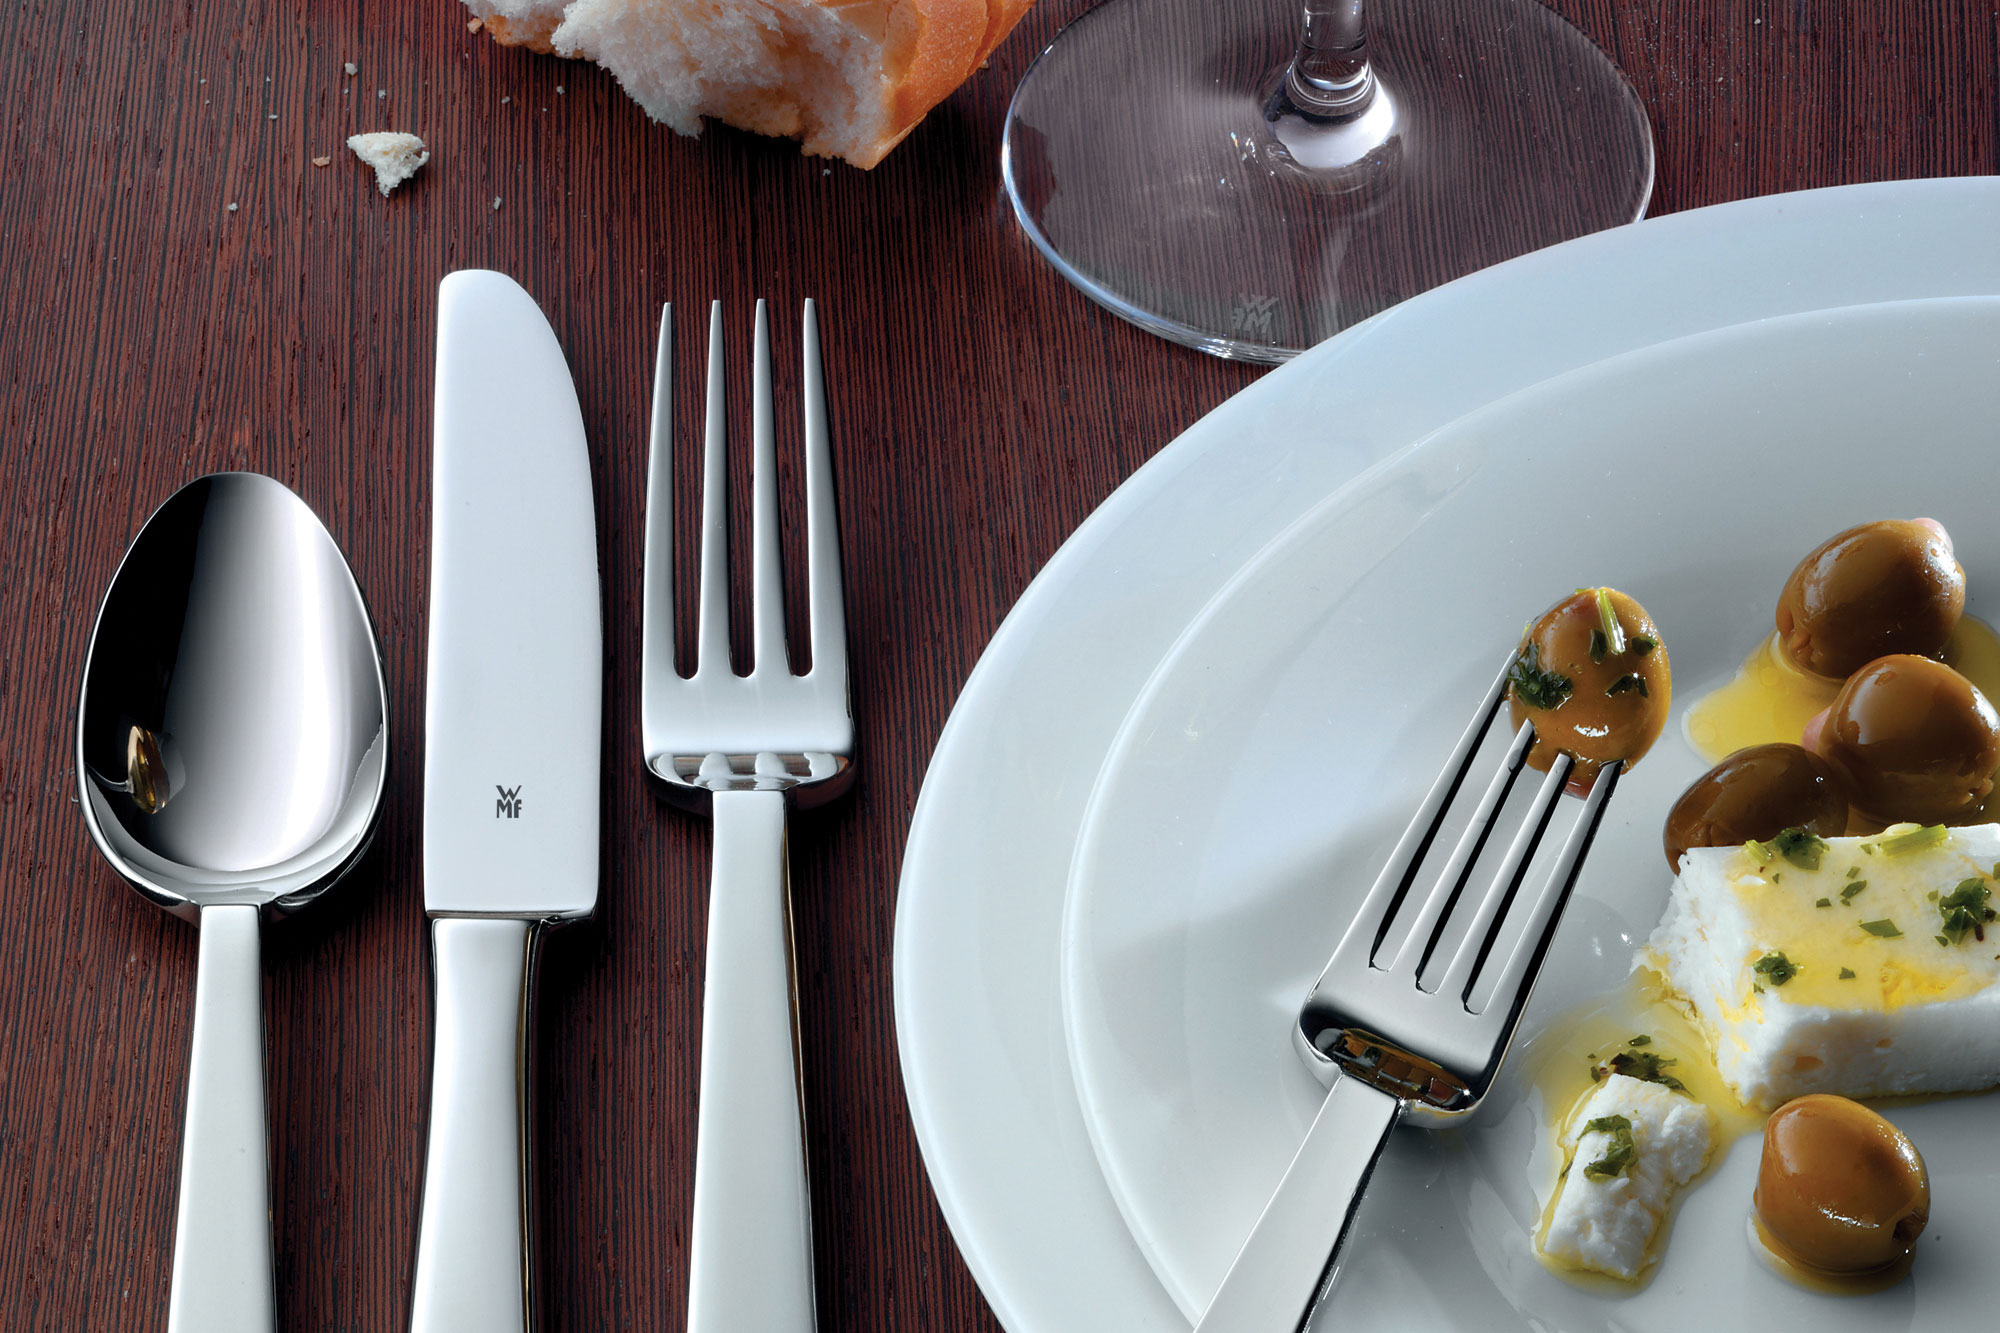 WMF Royal Stainless Steel Flatware Set, 40-piece | Cutlery and More